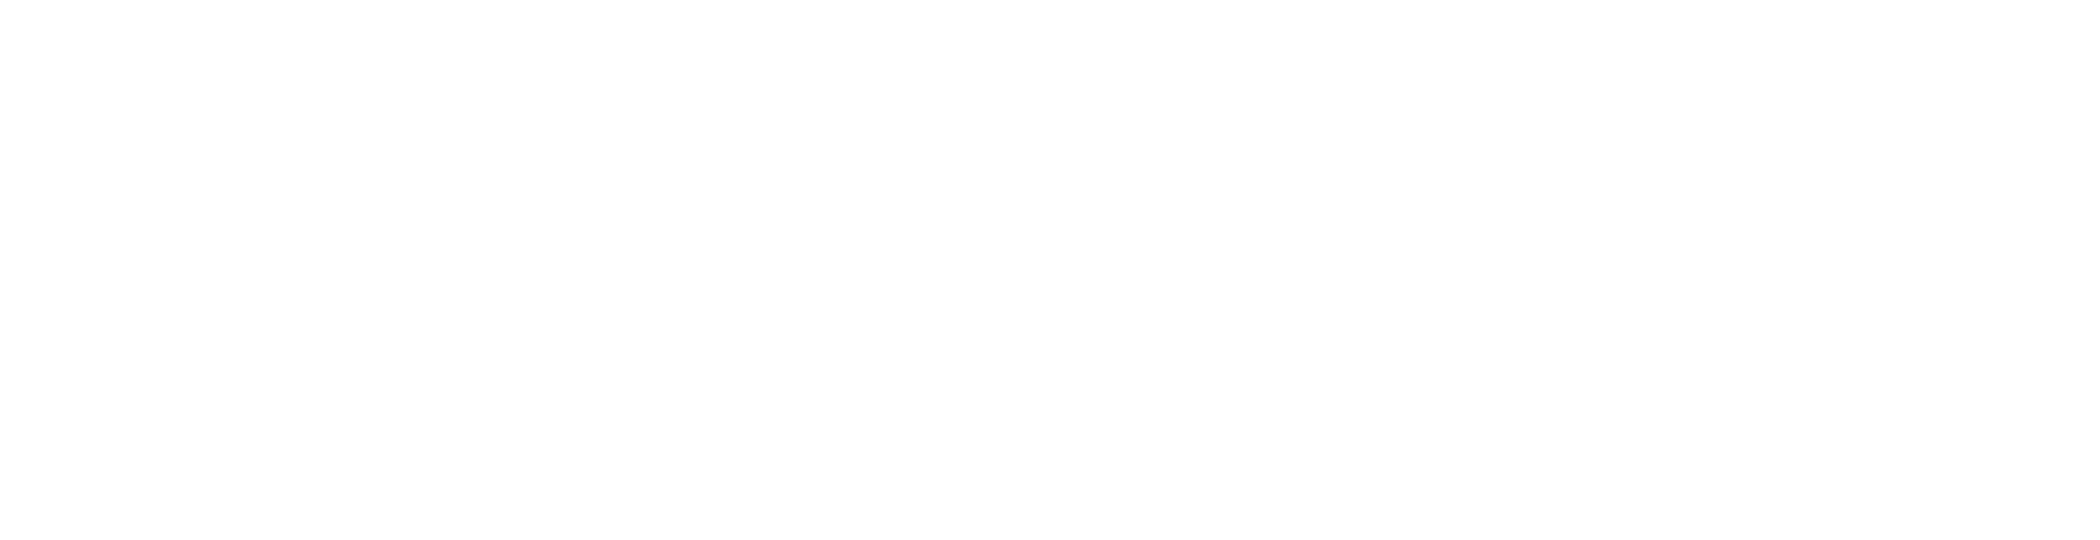 TraceyMcLean-Home-Logo.png